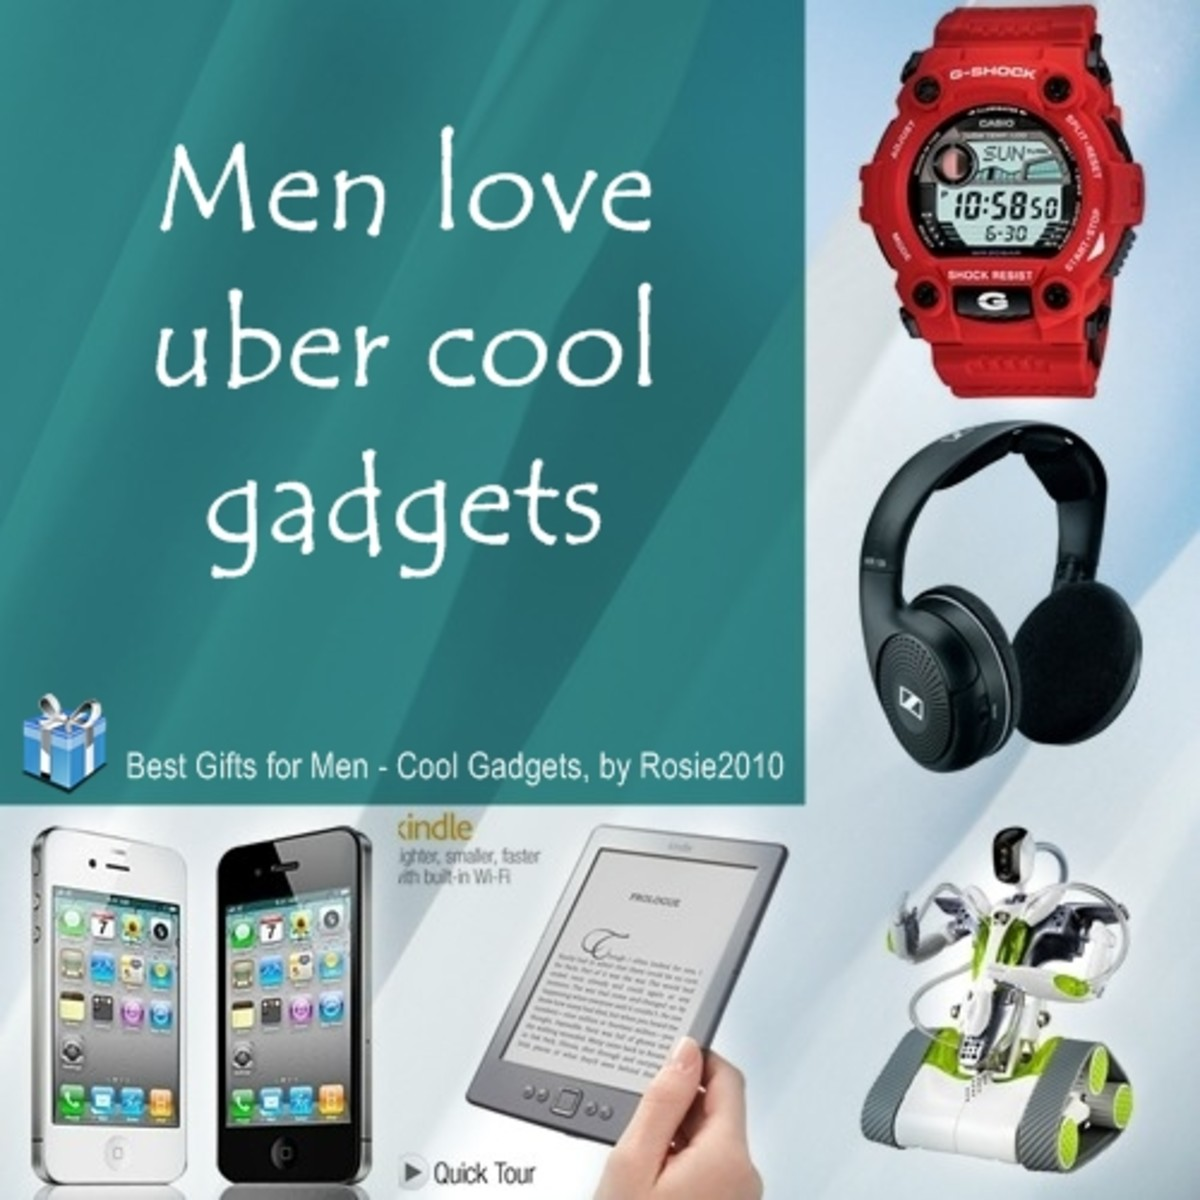 2014 Best Gifts for Men: Cool Gadgets Gift Ideas, by Rosie2010, product photos from Amazon.com, photo collage by Rosie2010